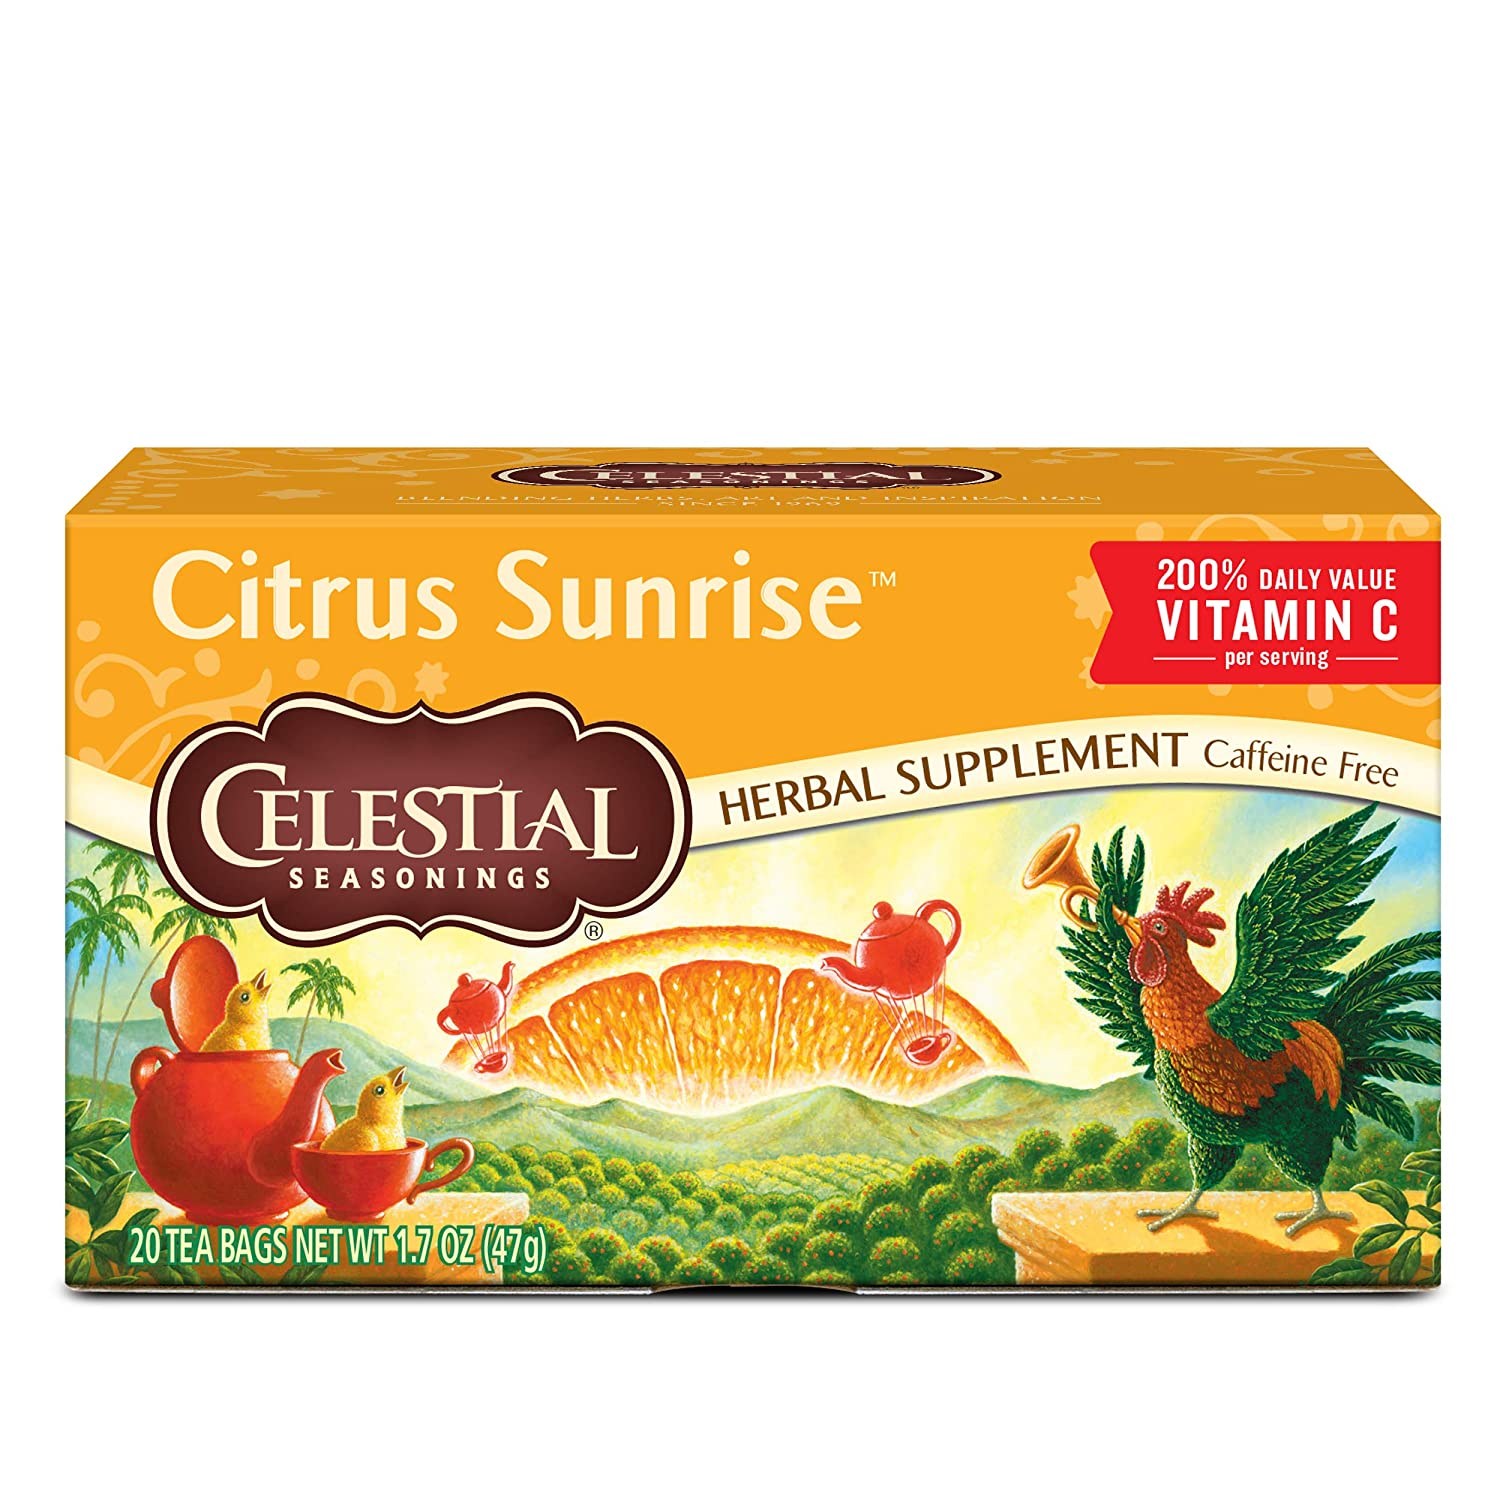 Celestial Seasonings Herbal Tea, Citrus Sunrise, 20 Count Box, Pack of 6,(Packaging may Vary)